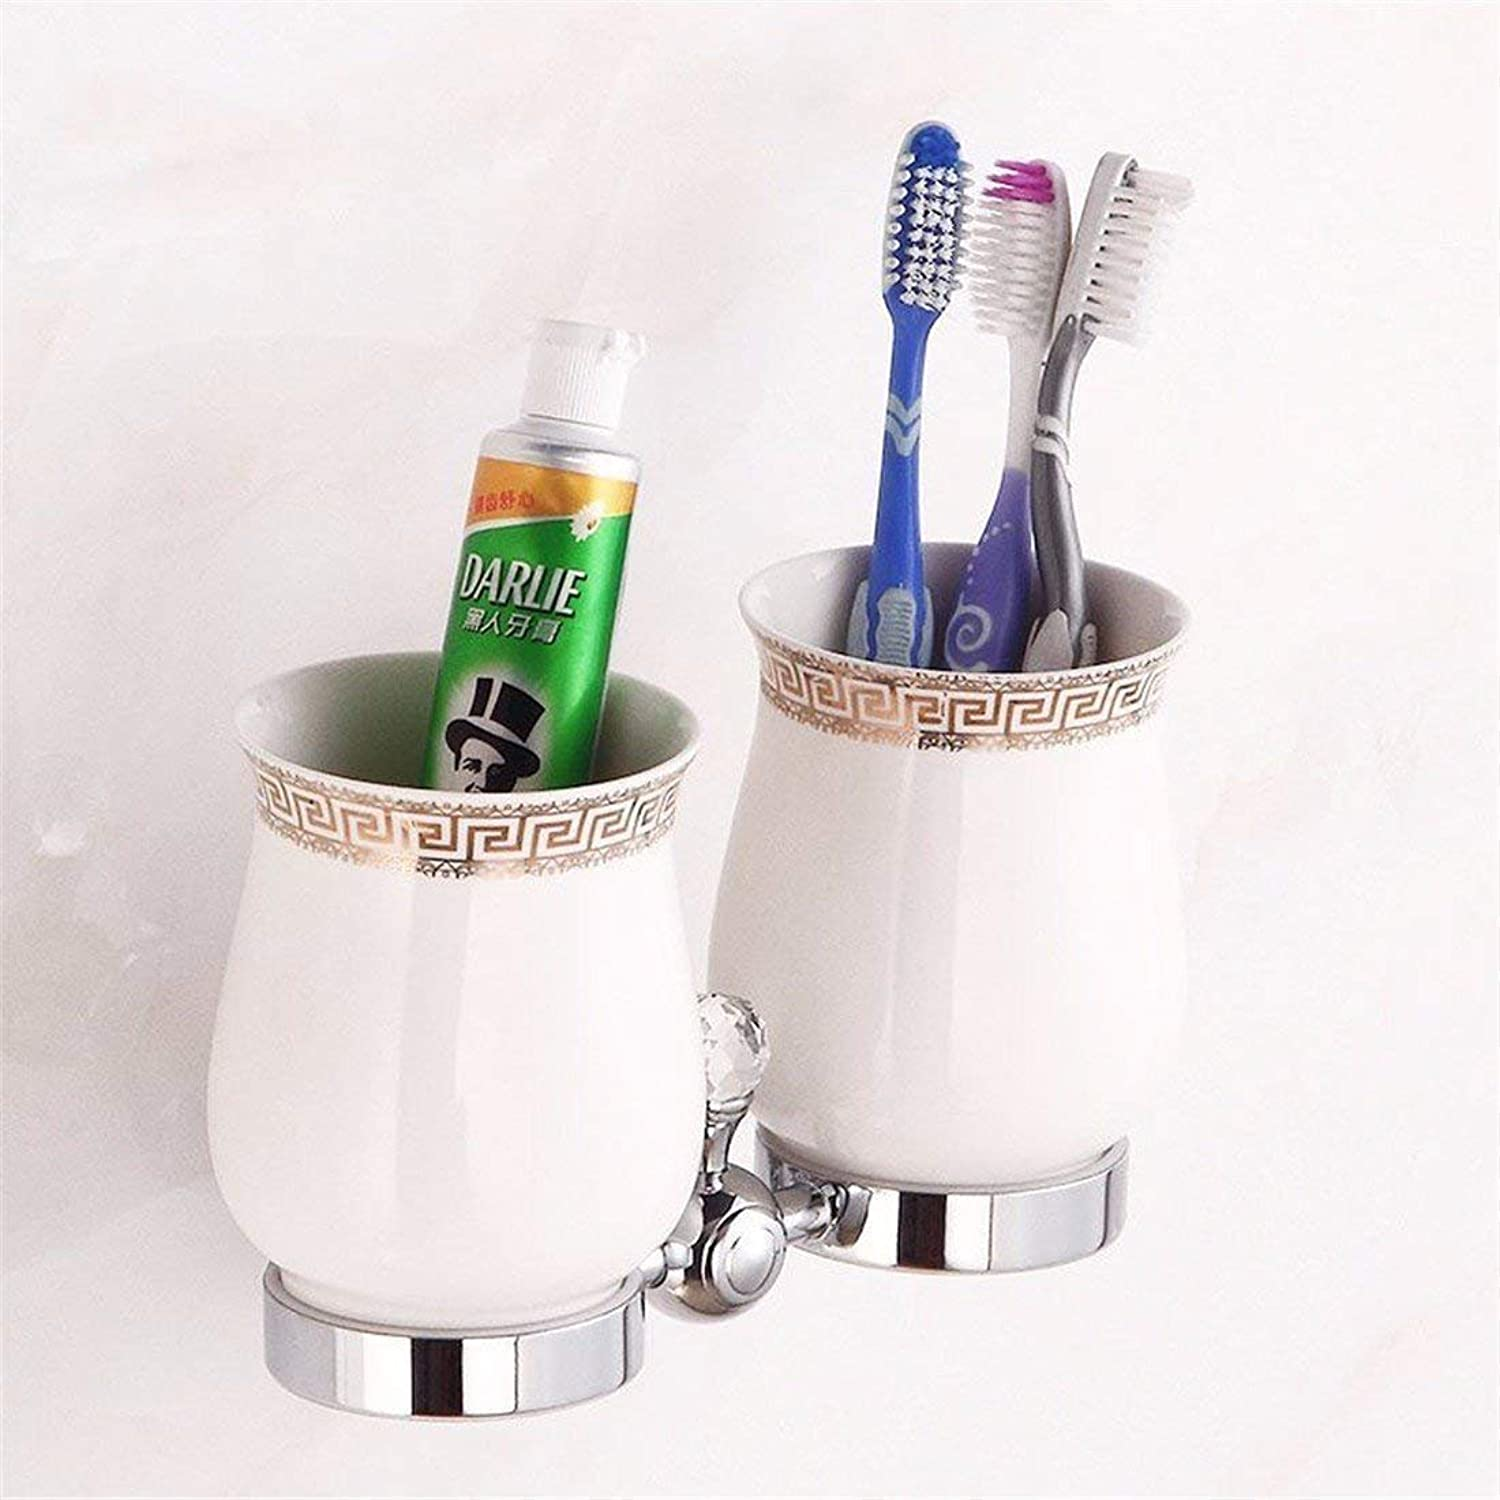 Base in Silver Copper European in The Bathroom Crystal Costume Coat Hanger Toilet Paper Rack soap, Double Cup